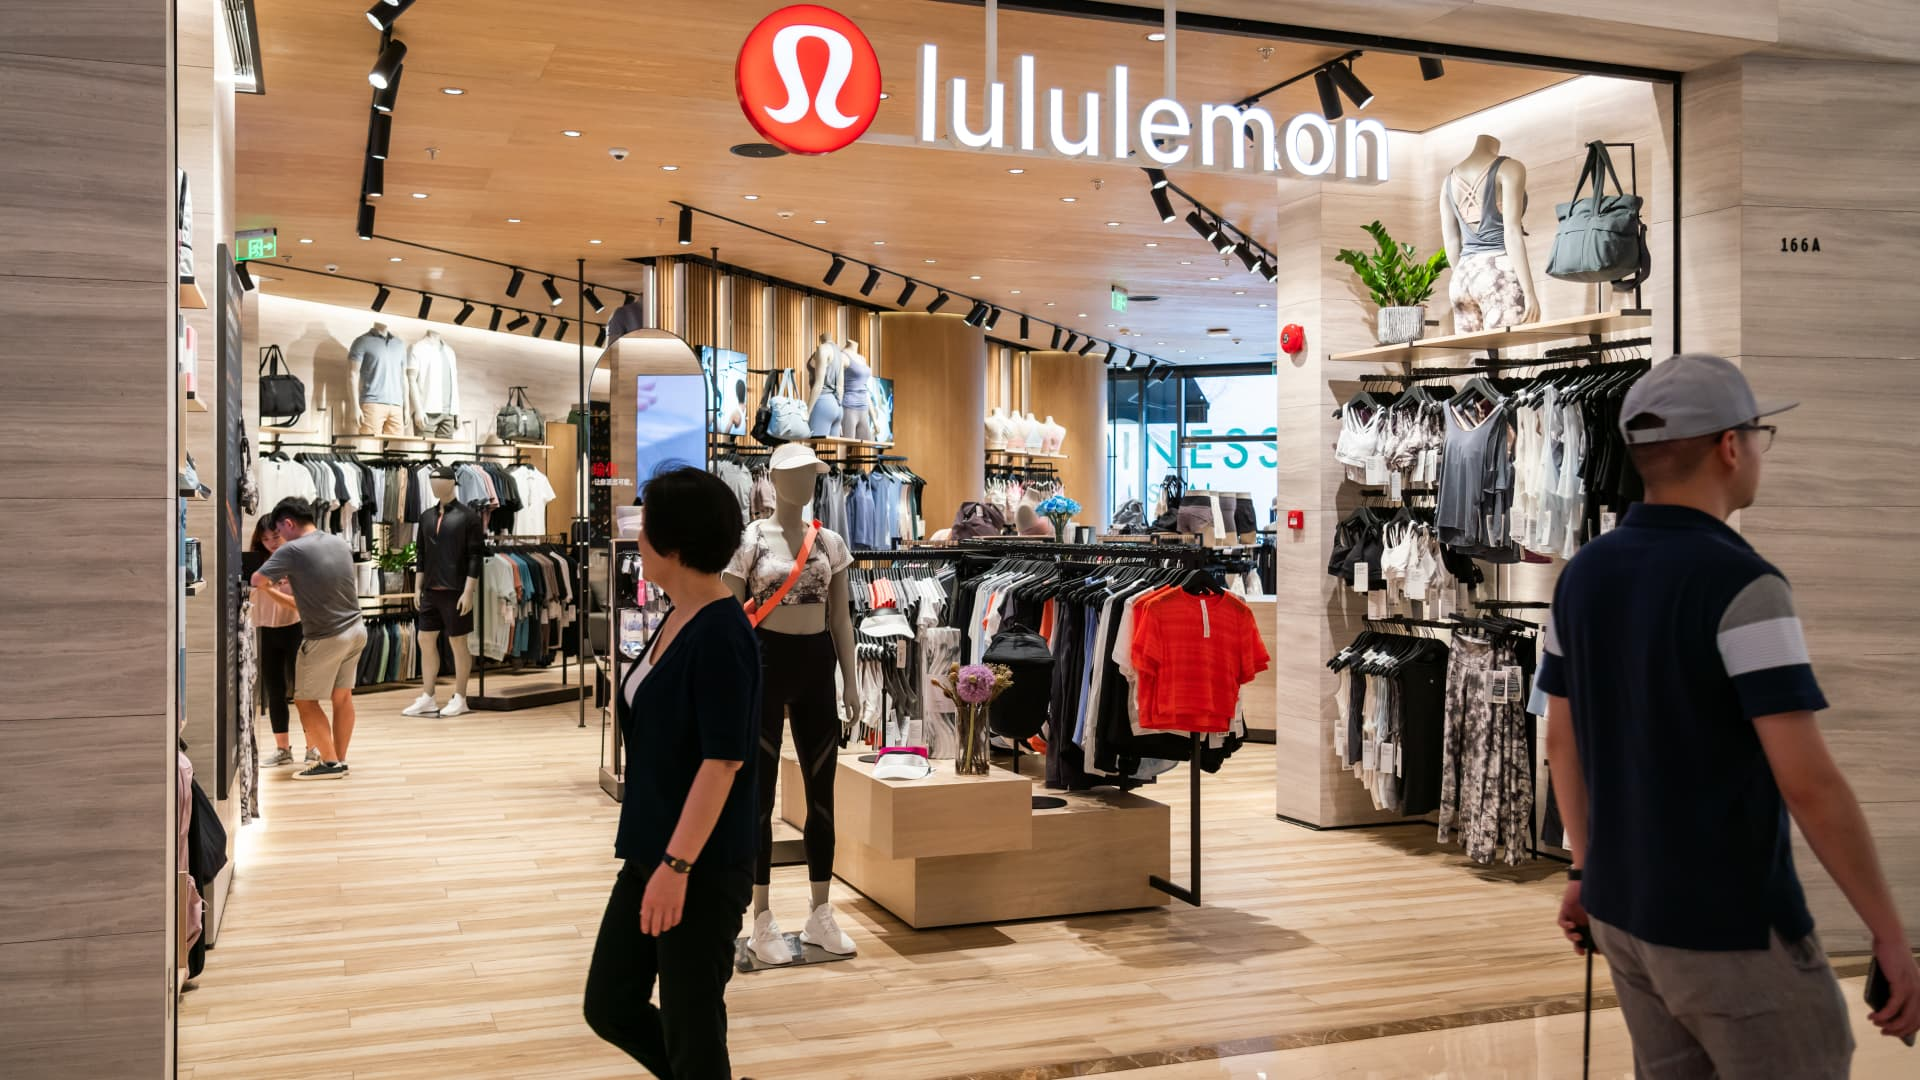 Pedestrians seen walking past Canadian athletic apparel retailer Lululemon in Shanghai.